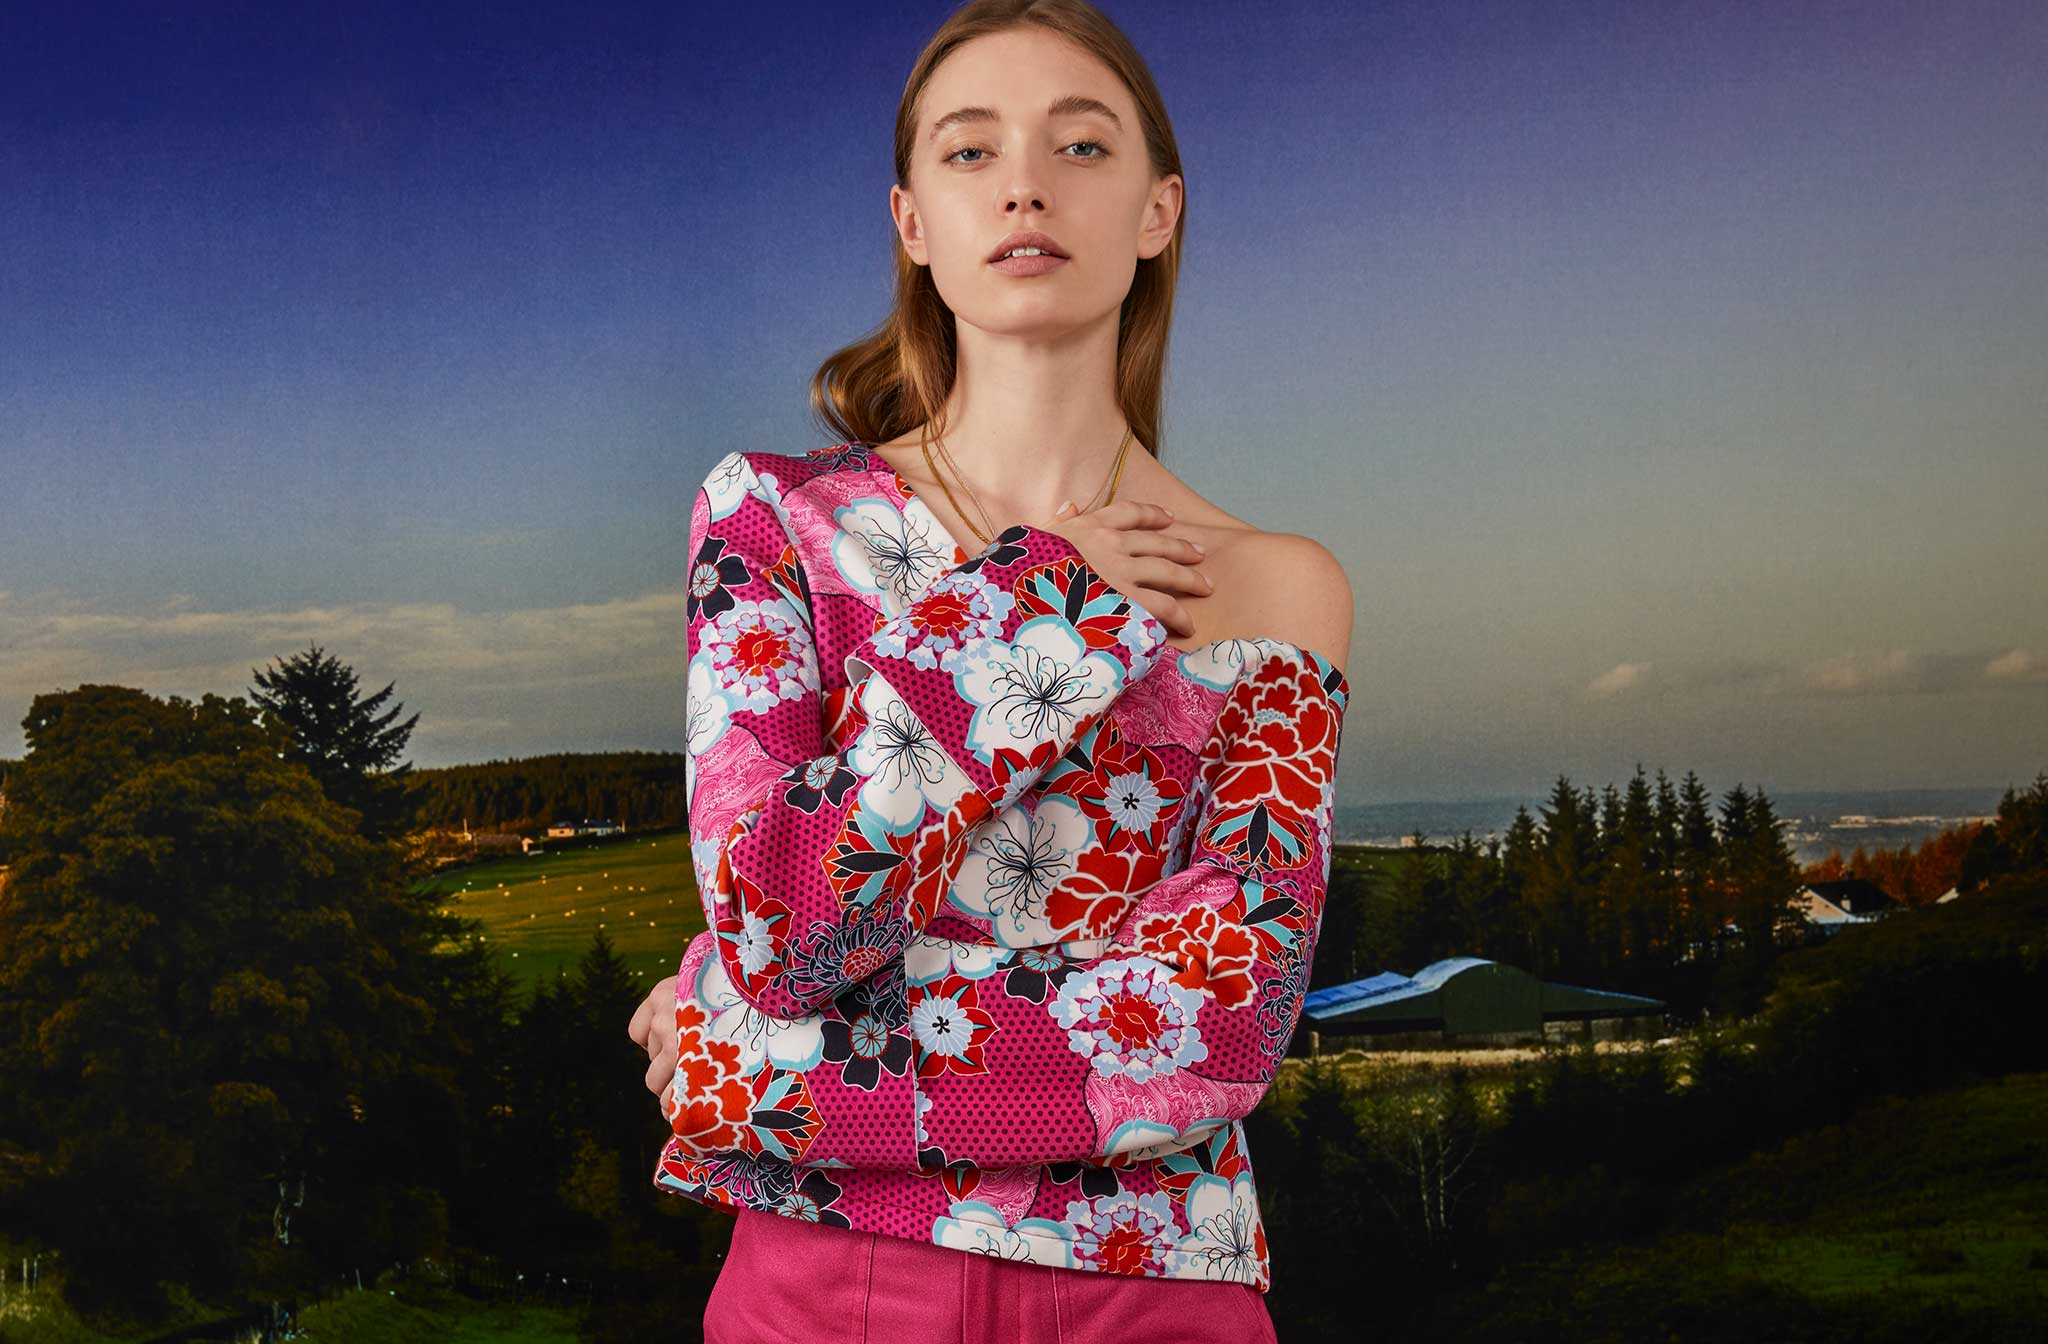 THE KIT's Logan Sweatshirt in a hot pink pop floral print has a relaxed off-the-shoulder fit and exaggerated sleeve cuffs.